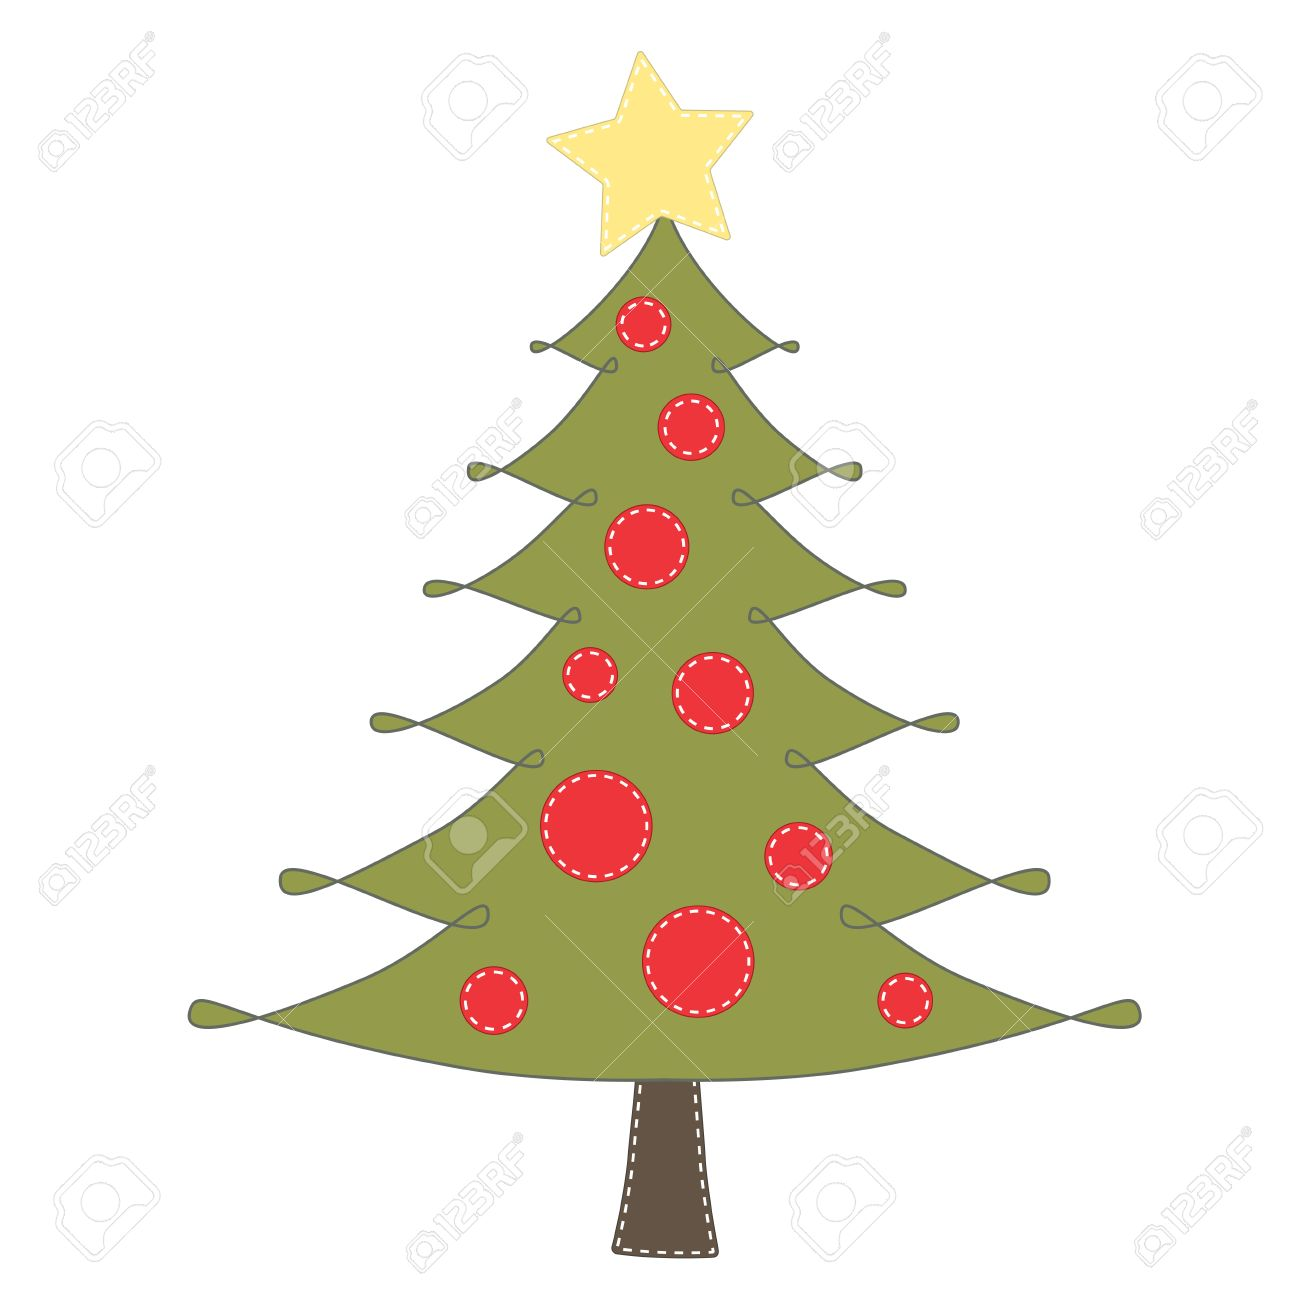 Christmas tree clip art on transparent background for scrapbooking...